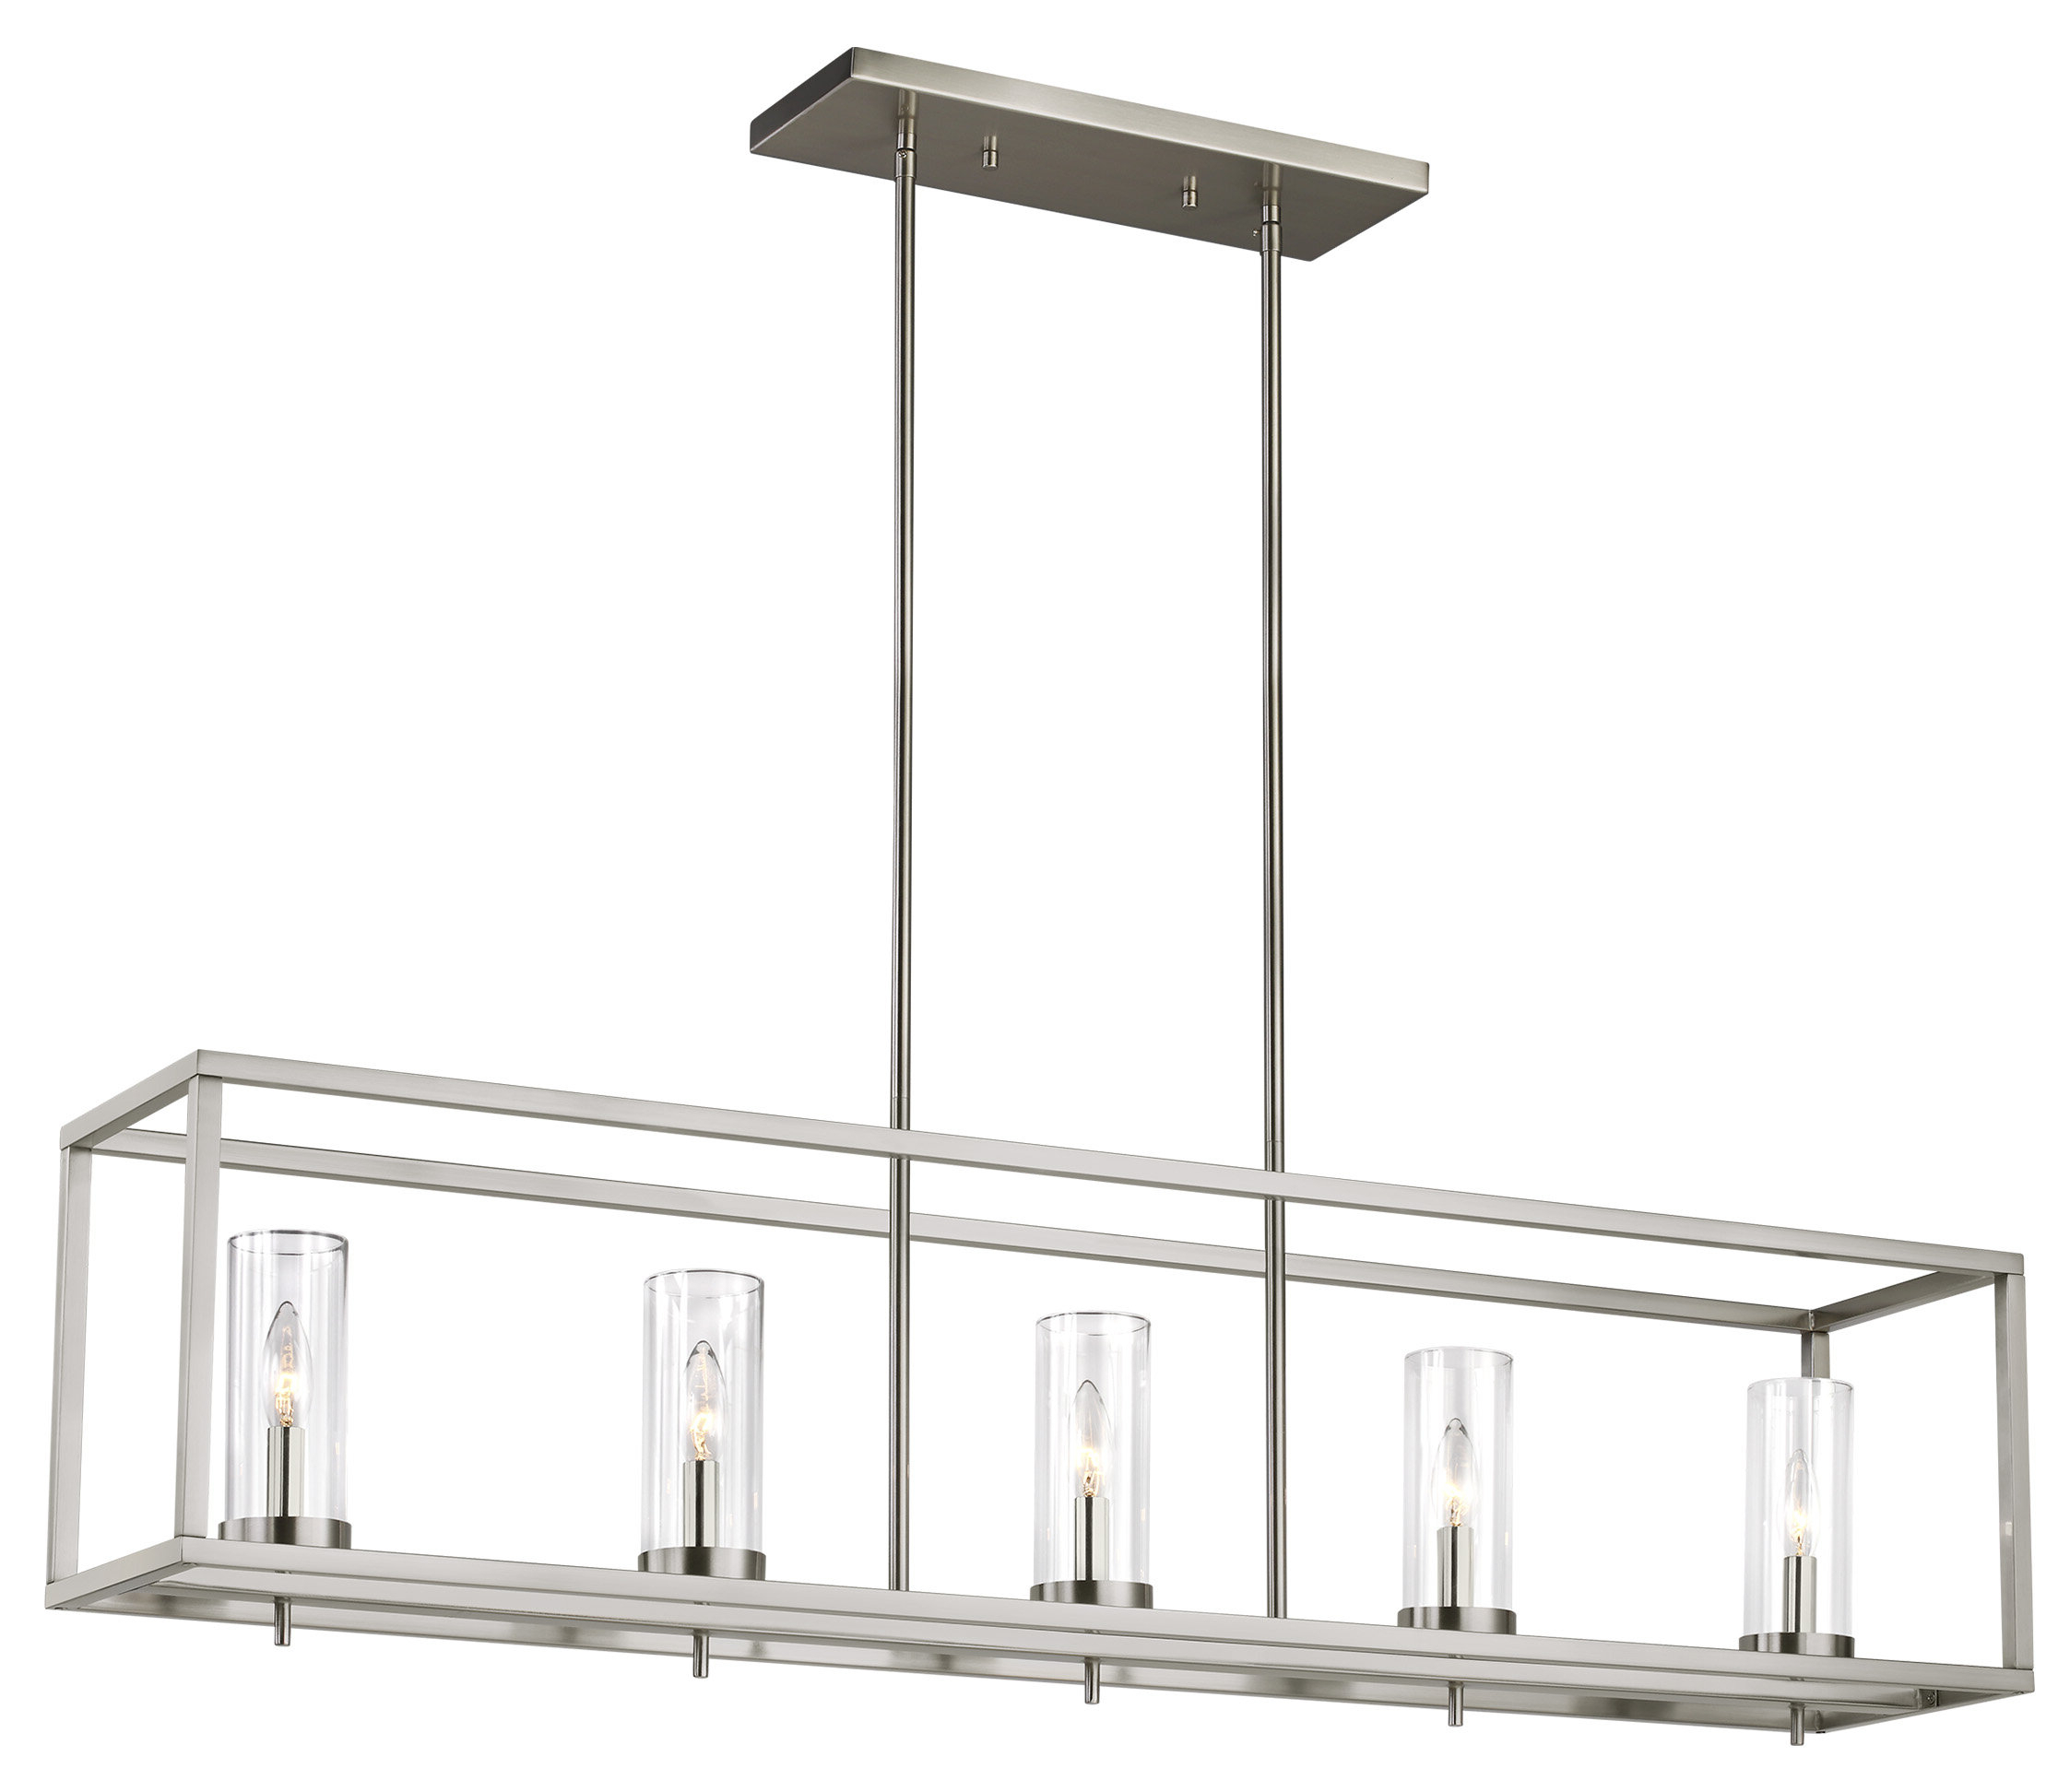 [%Square & Rectangular Chandeliers Sale – Up To 65% Off Until In Well Known Hewitt 4 Light Square Chandeliers|Hewitt 4 Light Square Chandeliers With Widely Used Square & Rectangular Chandeliers Sale – Up To 65% Off Until|Trendy Hewitt 4 Light Square Chandeliers Pertaining To Square & Rectangular Chandeliers Sale – Up To 65% Off Until|Well Known Square & Rectangular Chandeliers Sale – Up To 65% Off Until In Hewitt 4 Light Square Chandeliers%] (View 3 of 25)